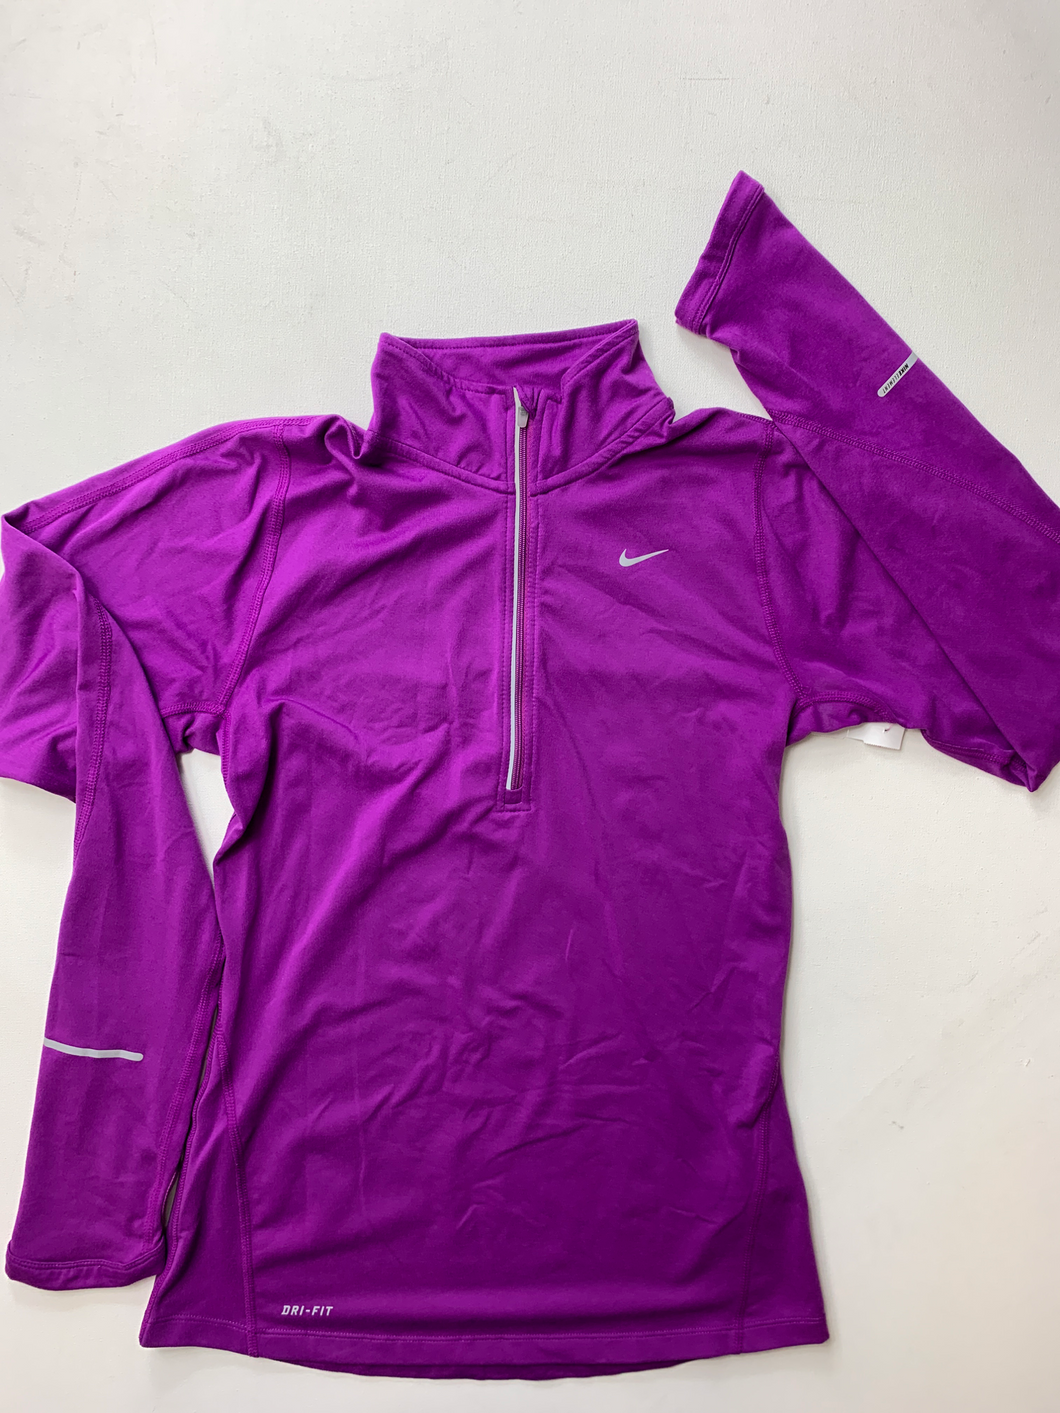 Nike Athletic Jacket Size Extra Small